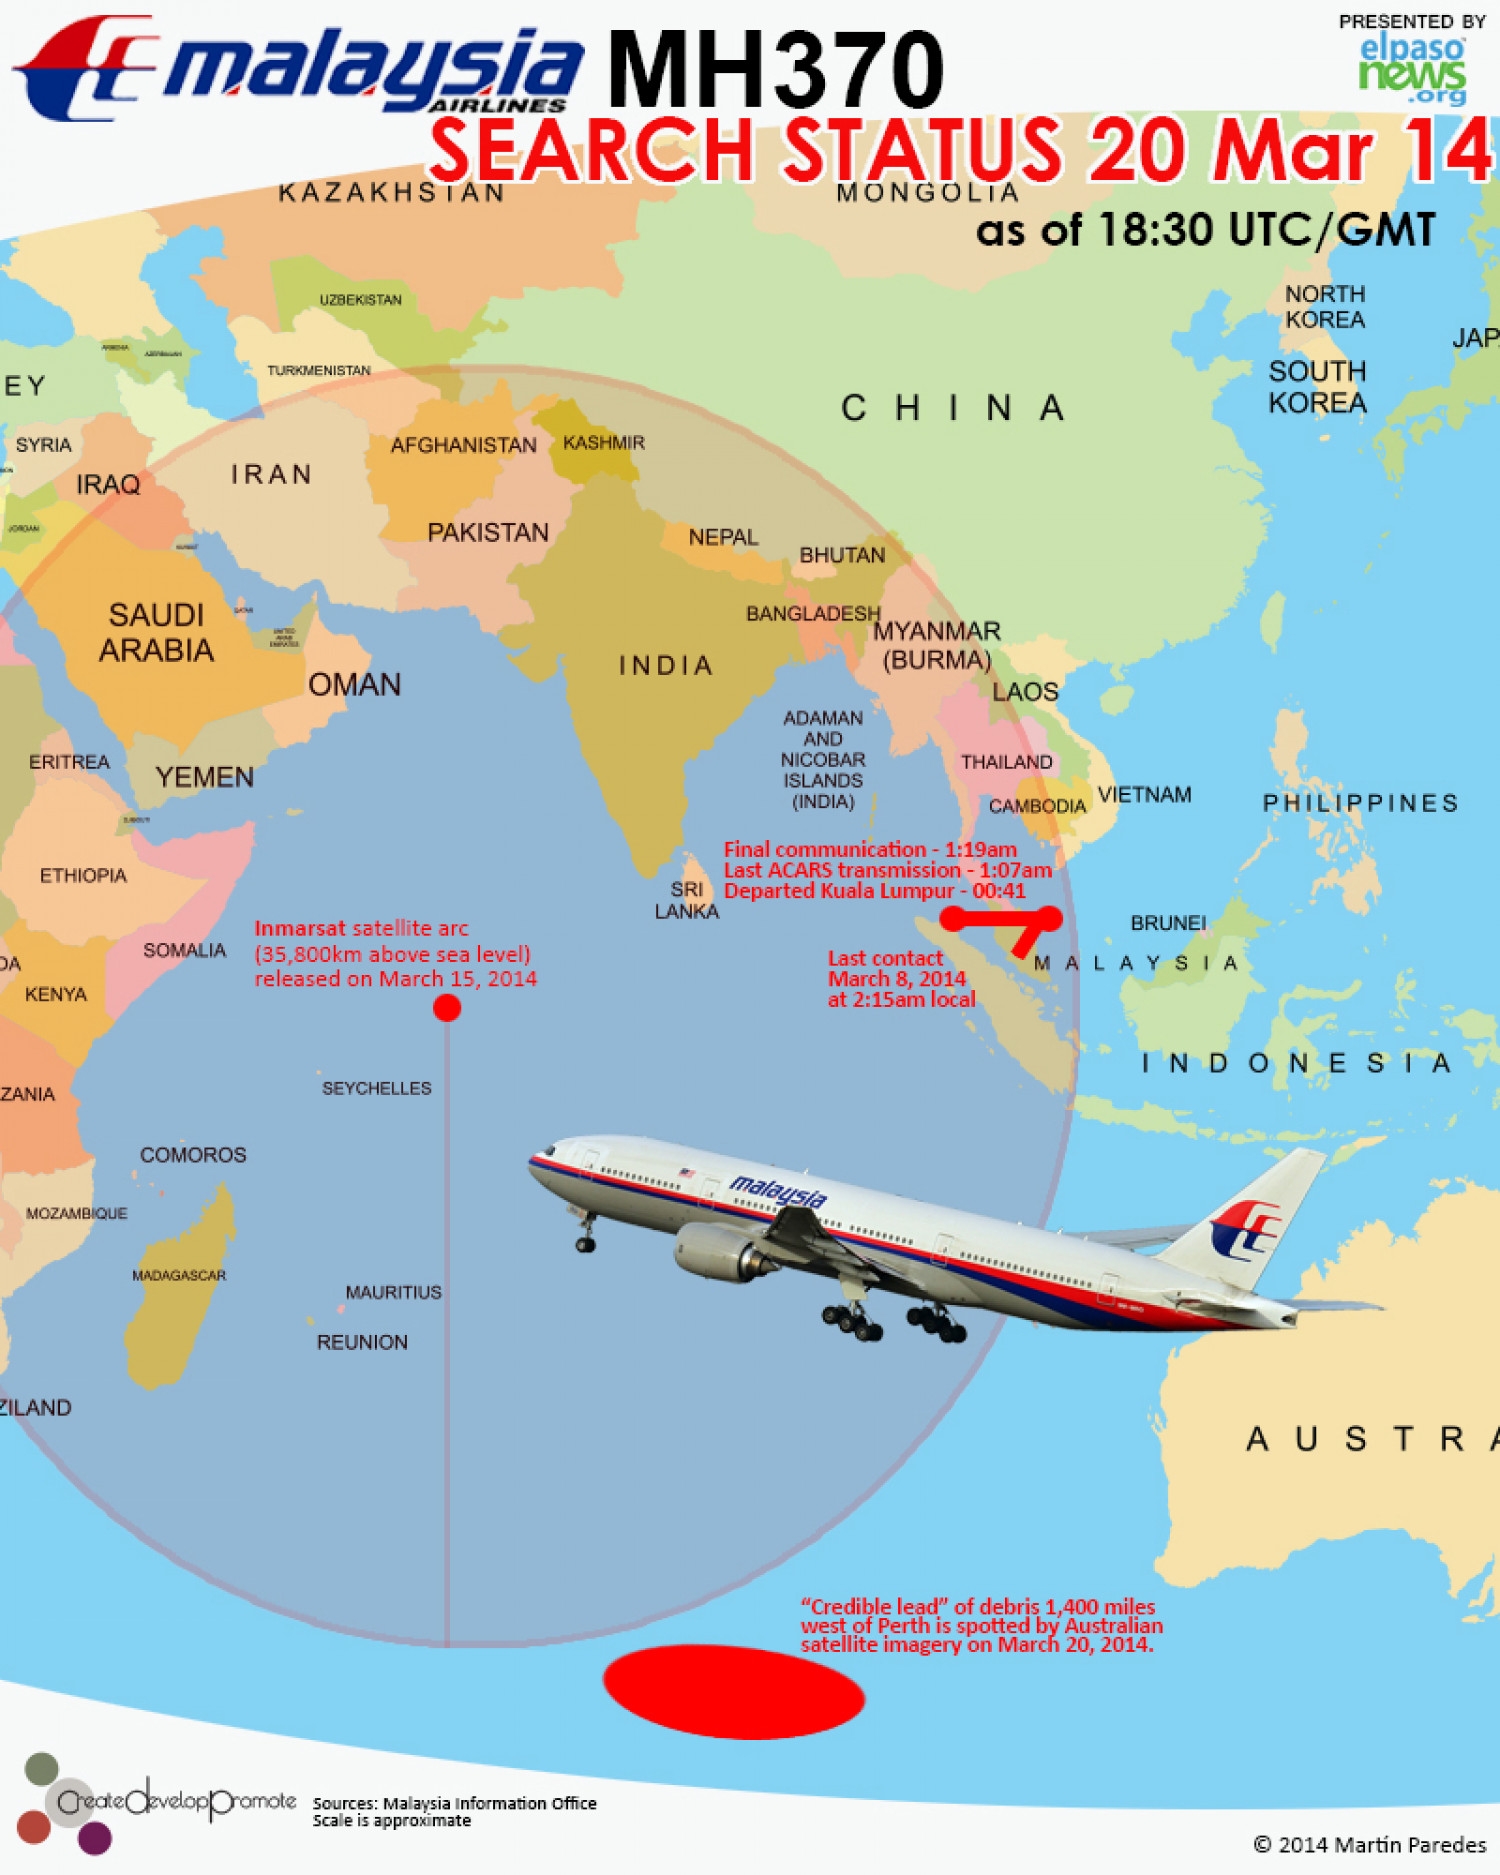 Malaysian Airlines MH370 March 20, 2014 Search Status Infographic